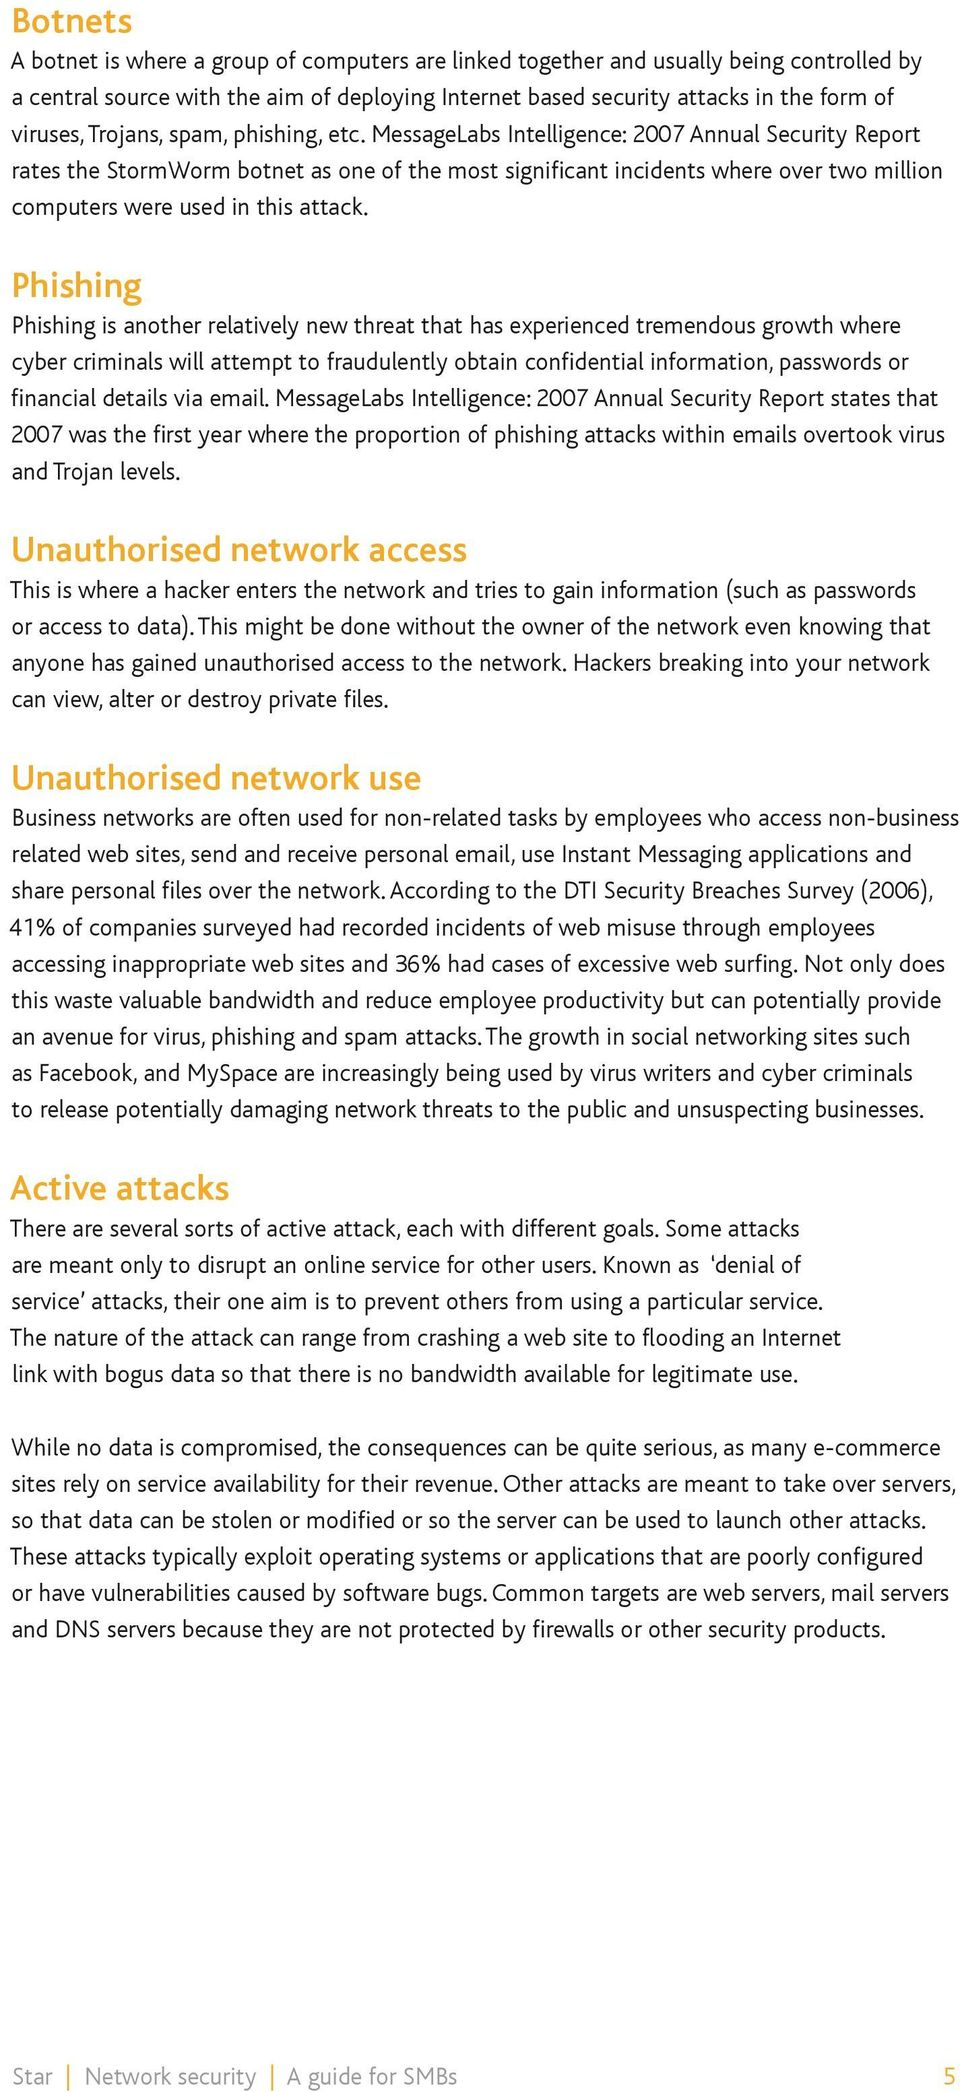 MessageLabs Intelligence: 2007 Annual Security Report rates the StormWorm botnet as one of the most significant incidents where over two million computers were used in this attack.